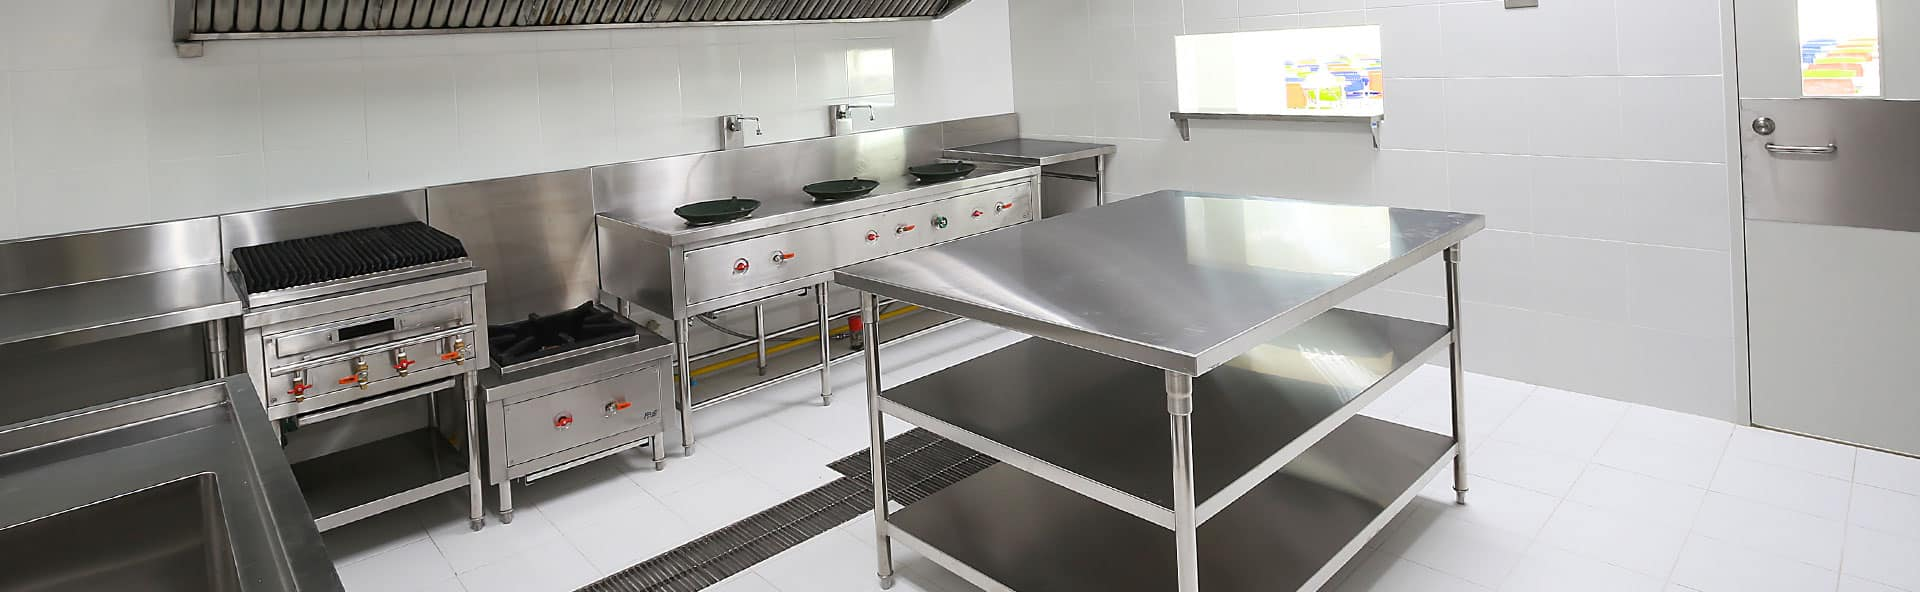 Commercial Kitchen Extractor Fan Repair Expert Ventilation Install London